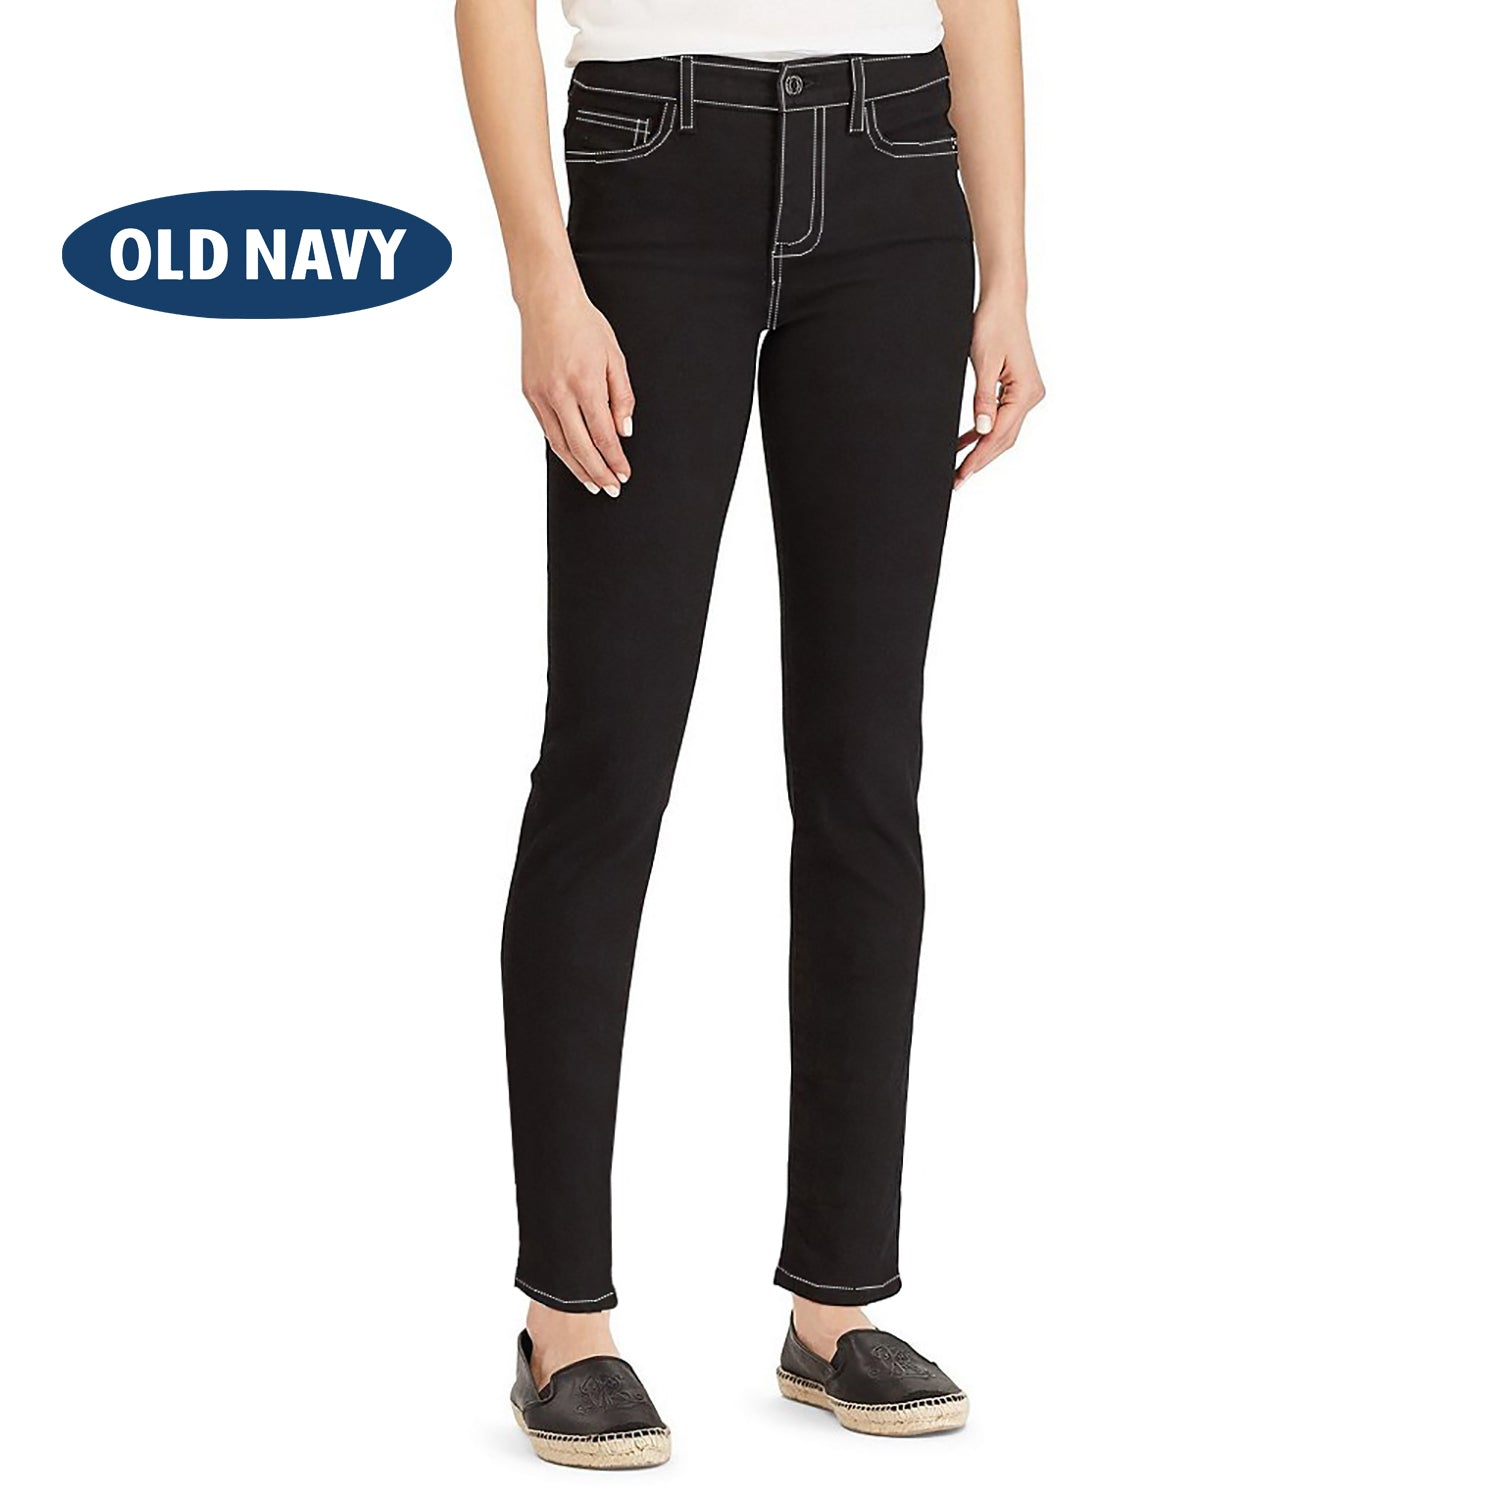 Old Navy Stylish Slim Fit Denim For Ladies-Jet Black-NA5538